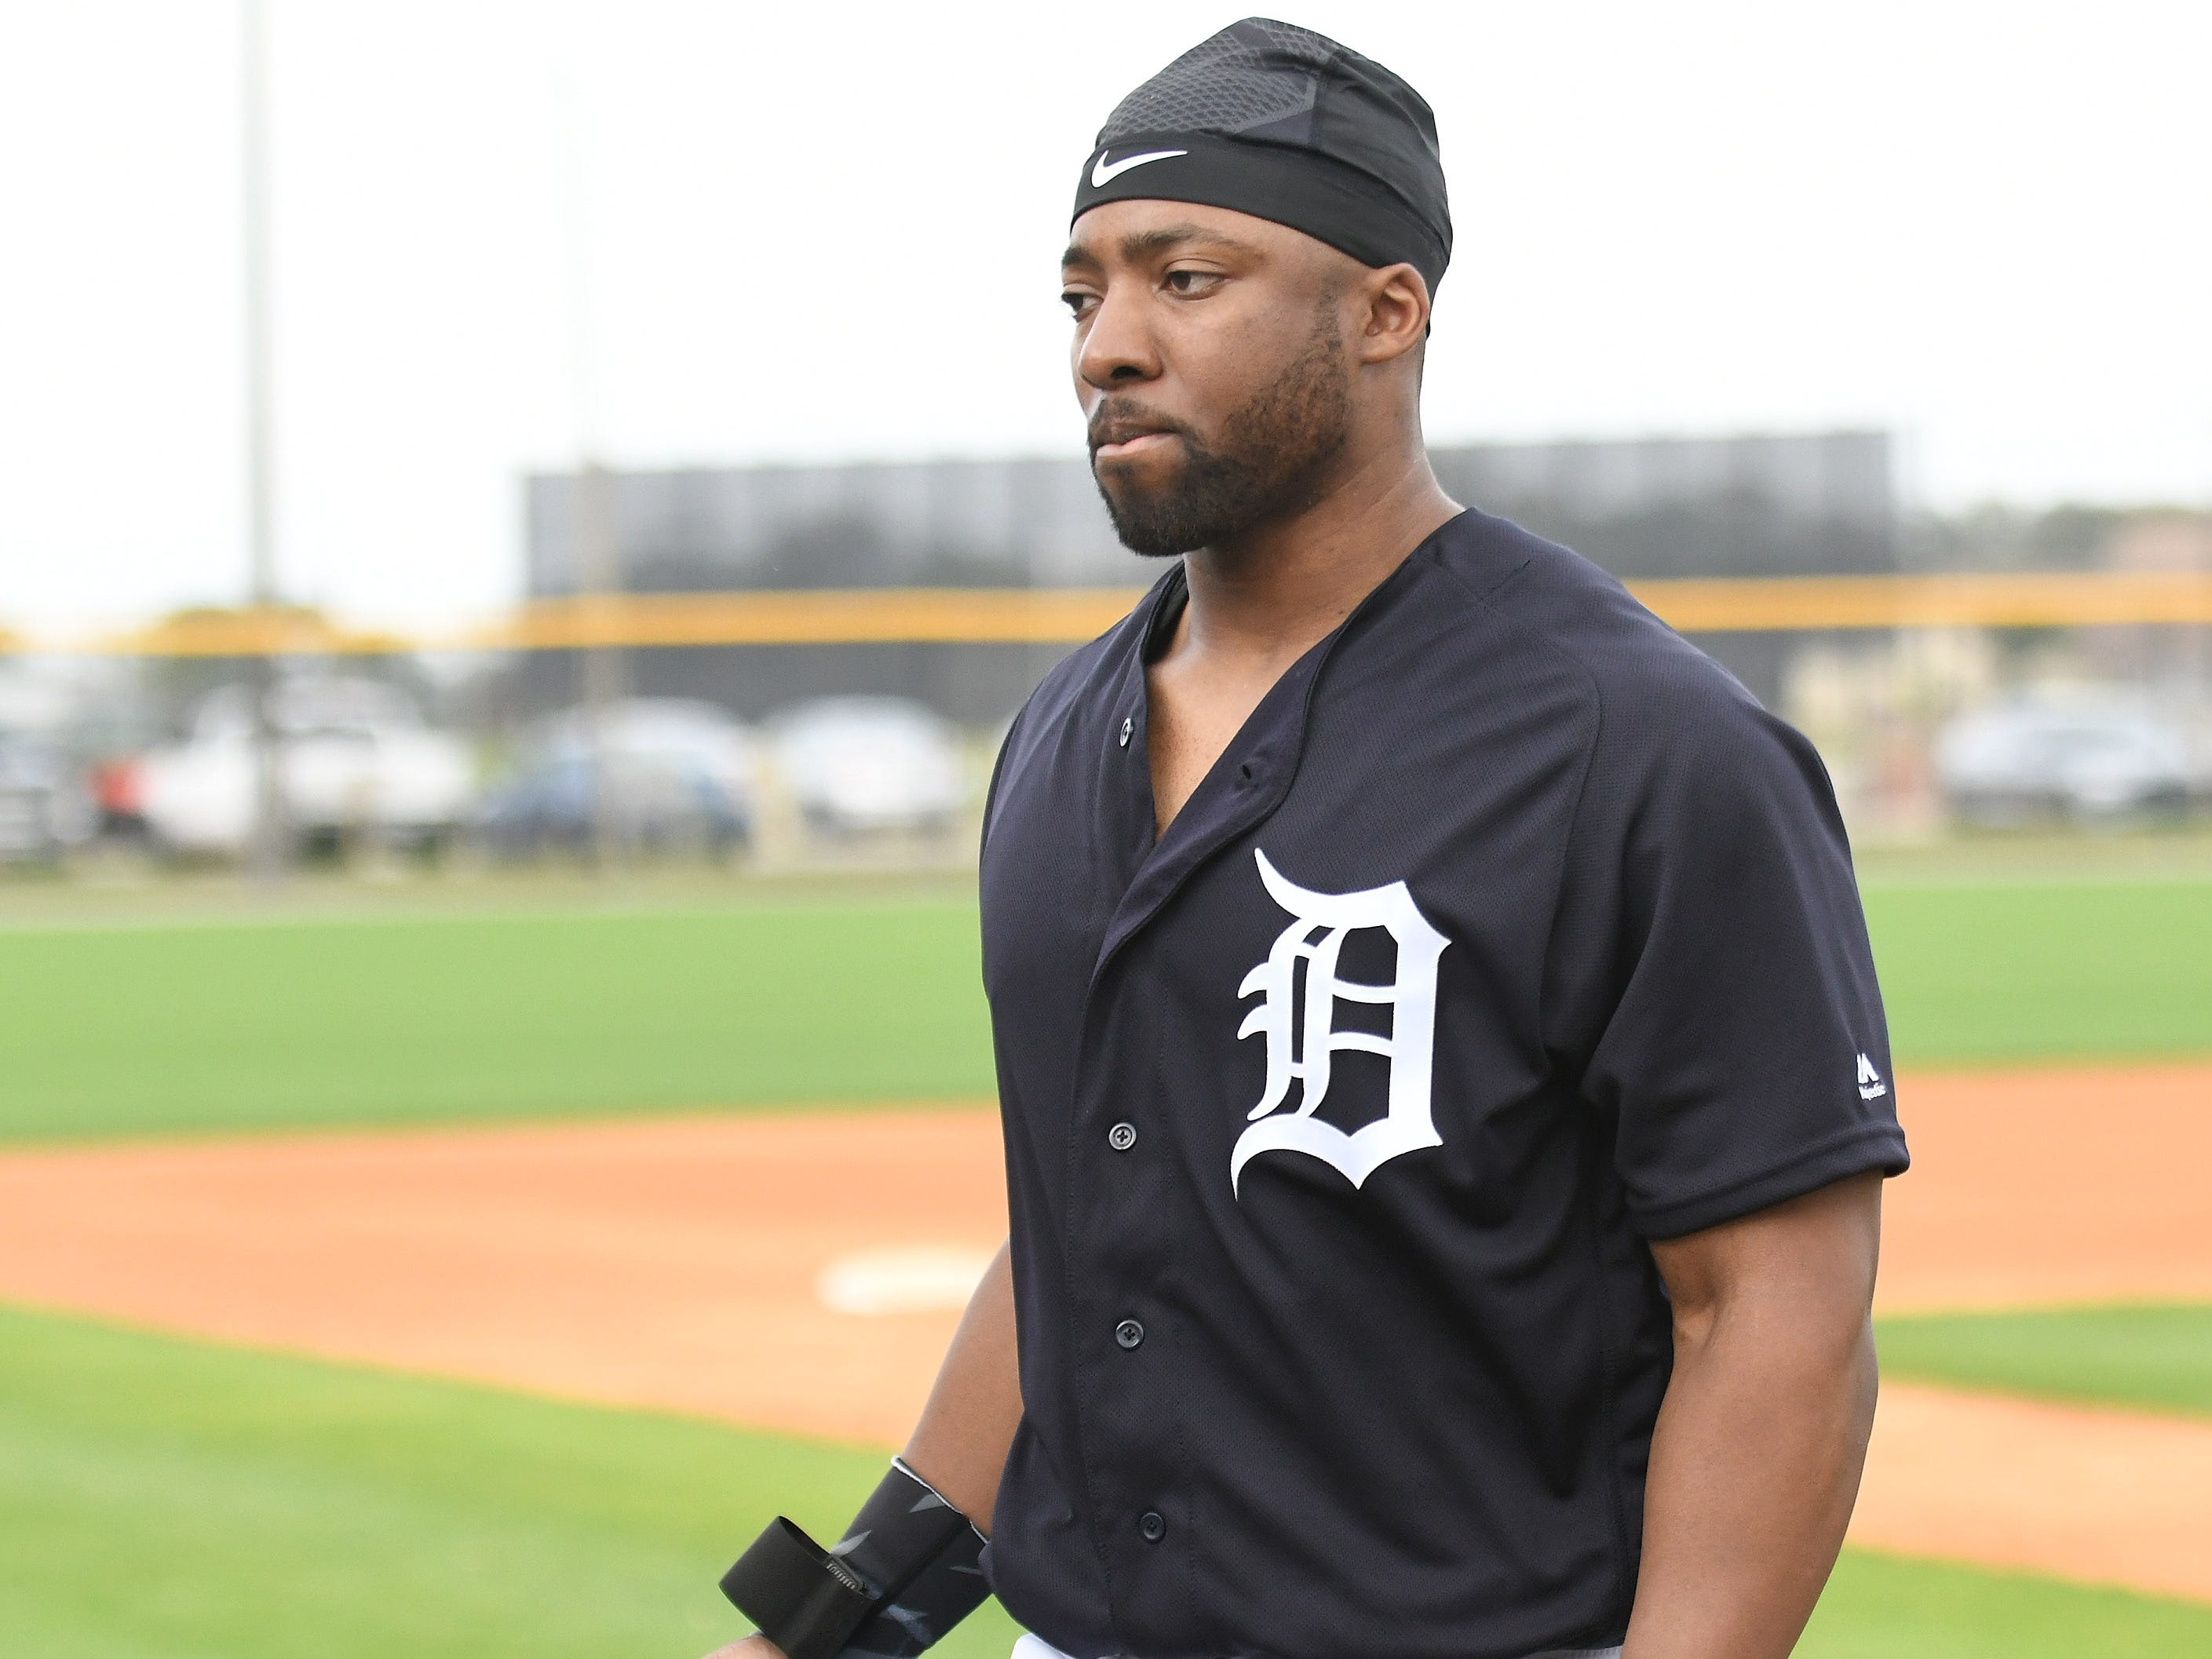 Tigers' Christin Stewart heads to the next diamond at the first full squad workout.